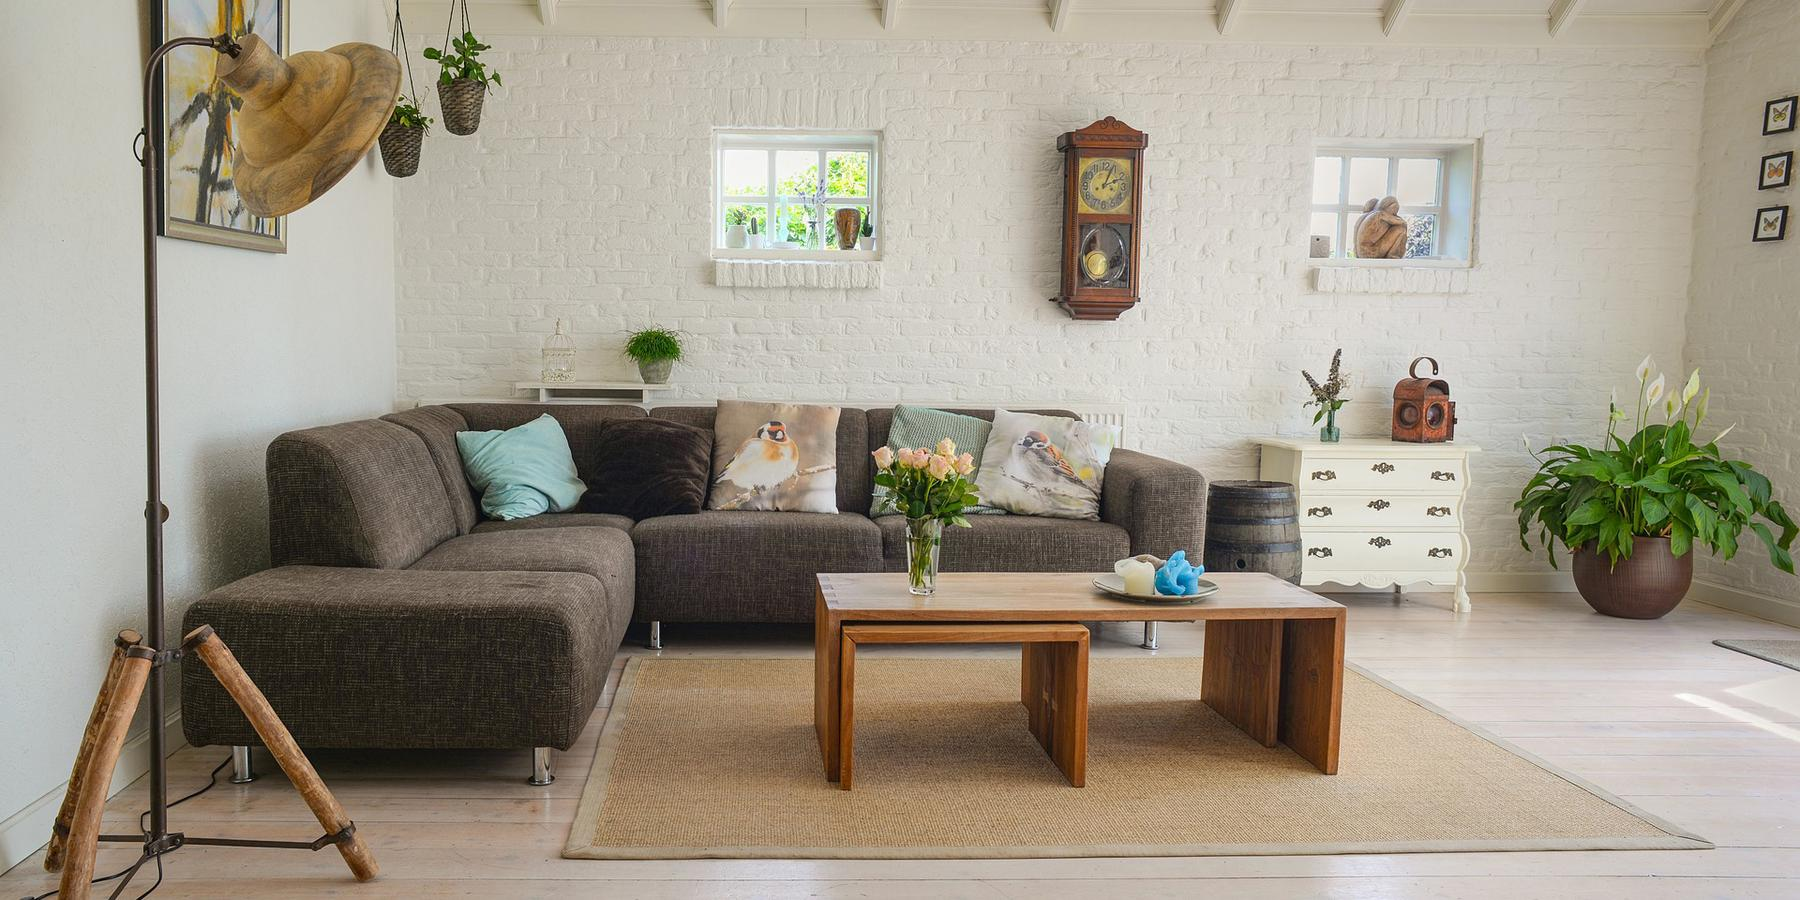 Bespoke Living Room<br>Furniture